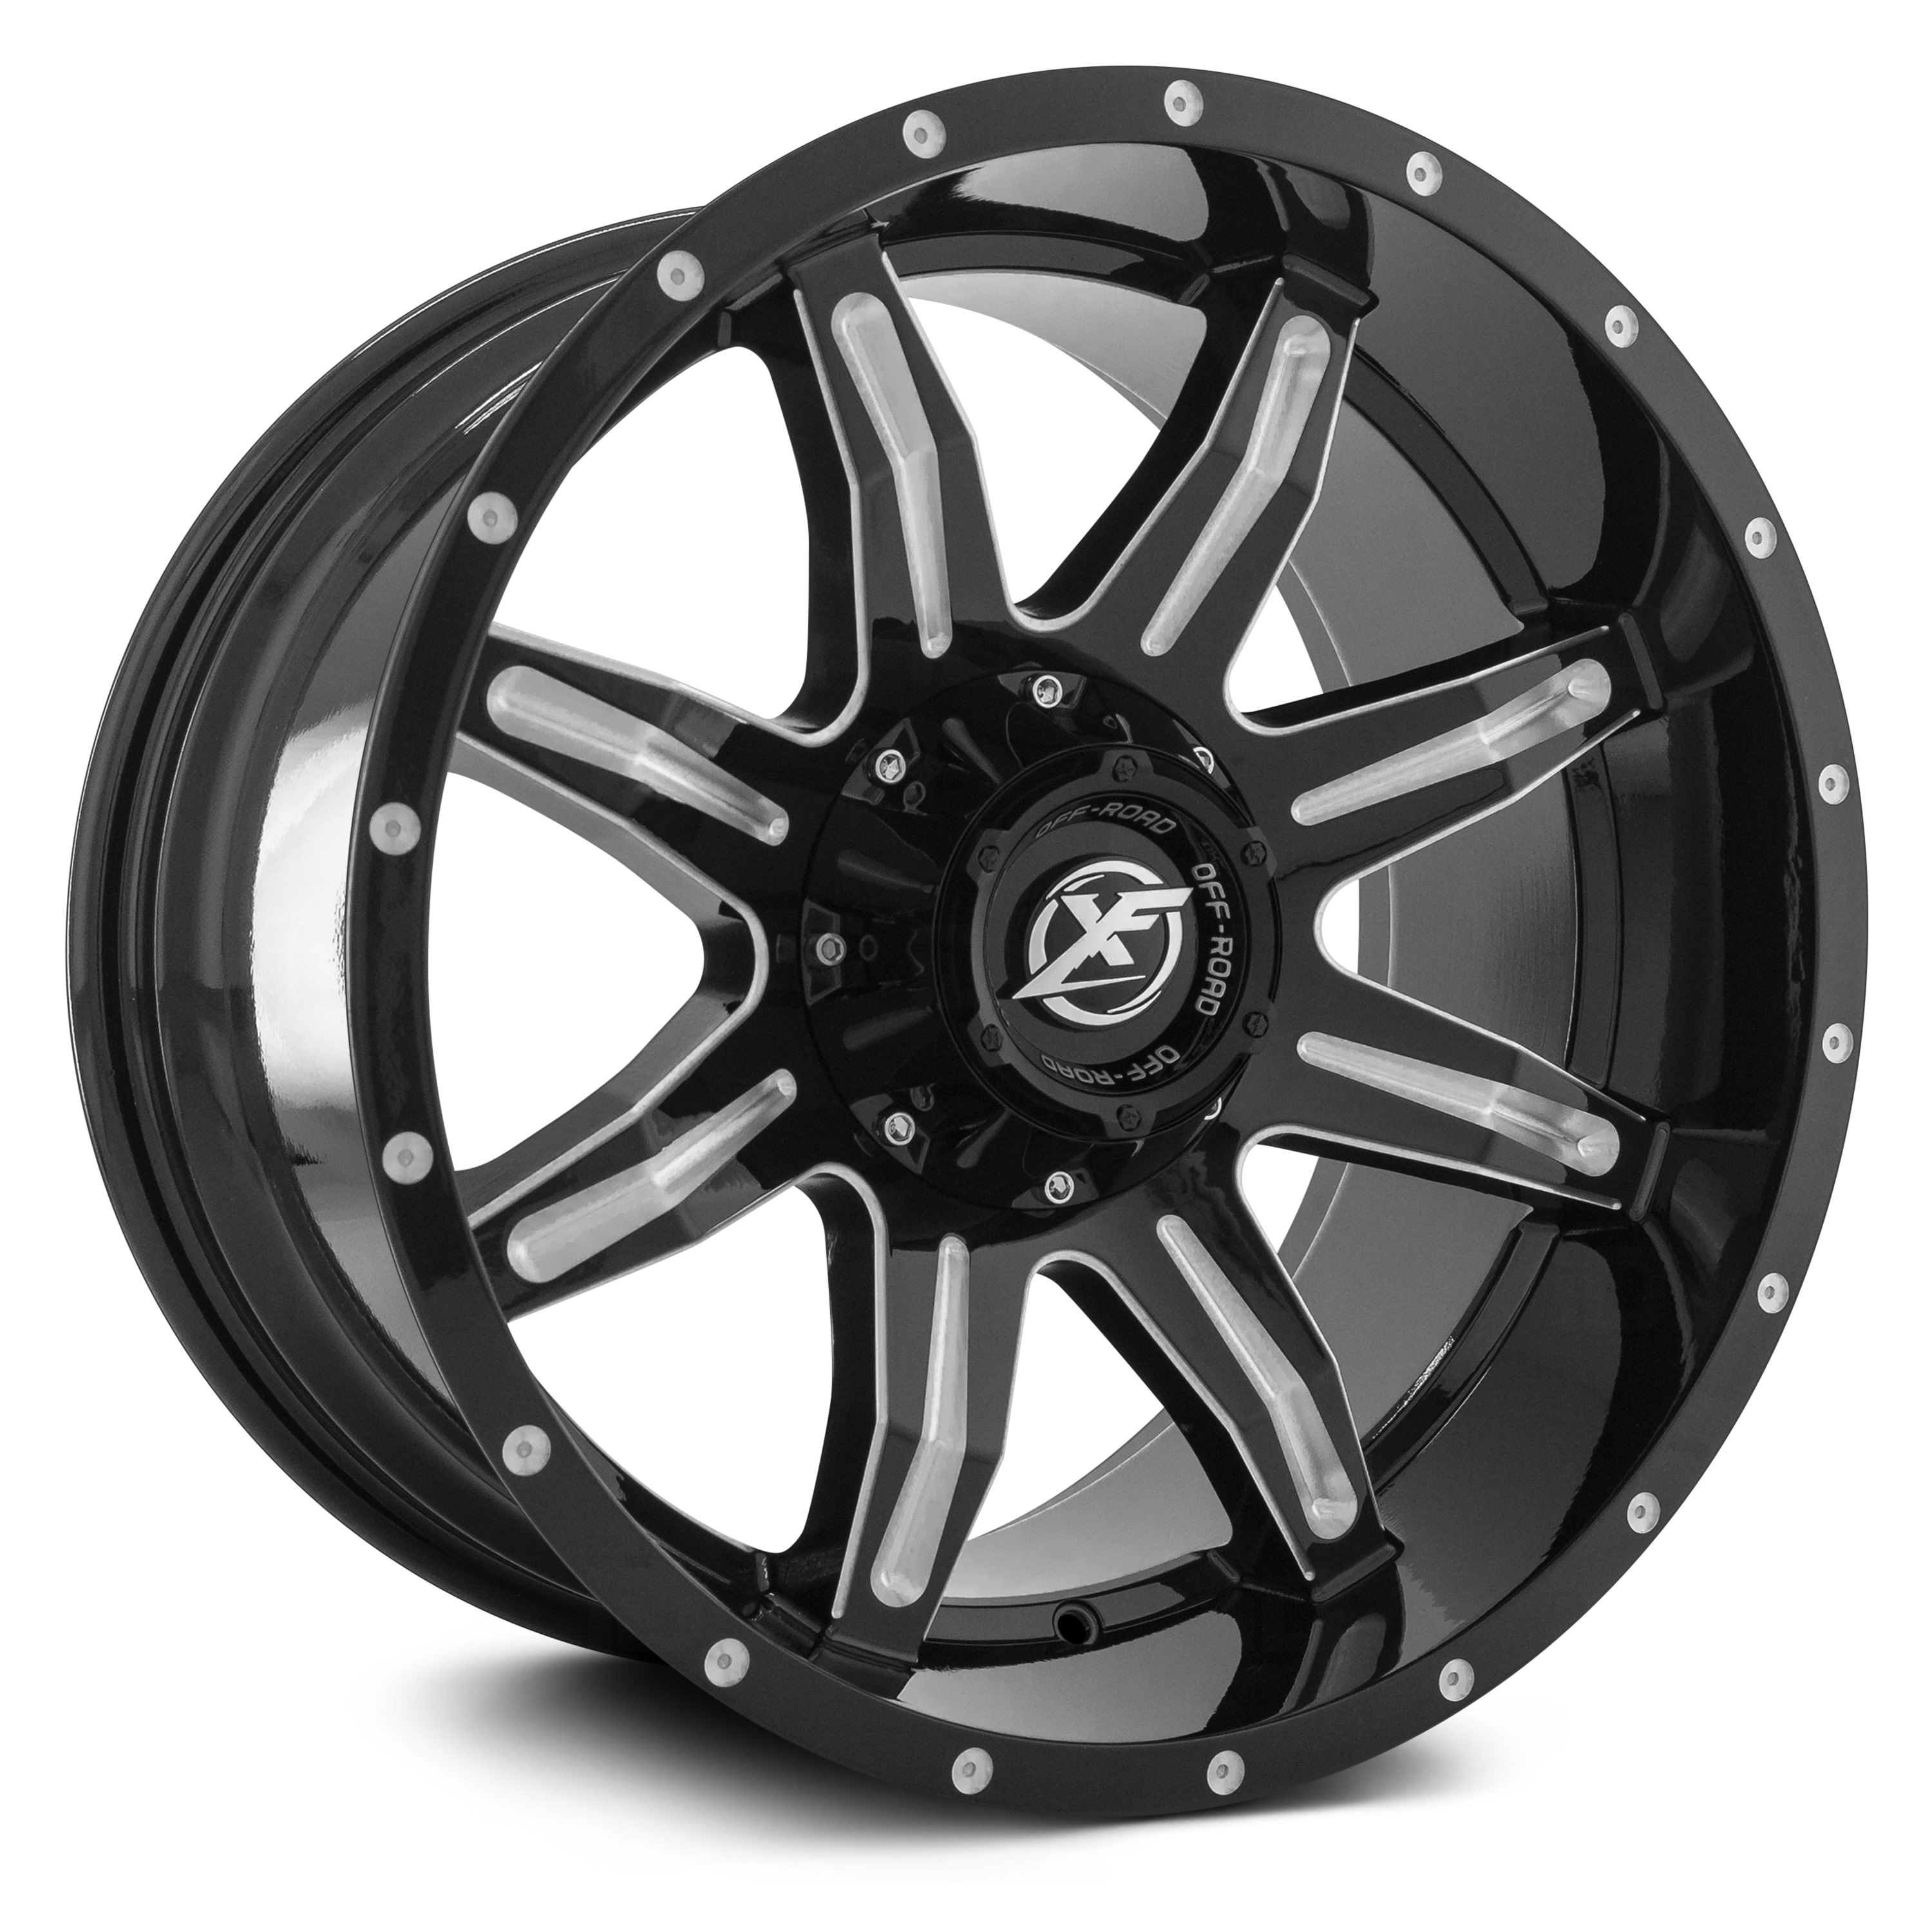 Xf Off Road Xf 215 Wheels Gloss Black With Milled Accent And Dots Rims